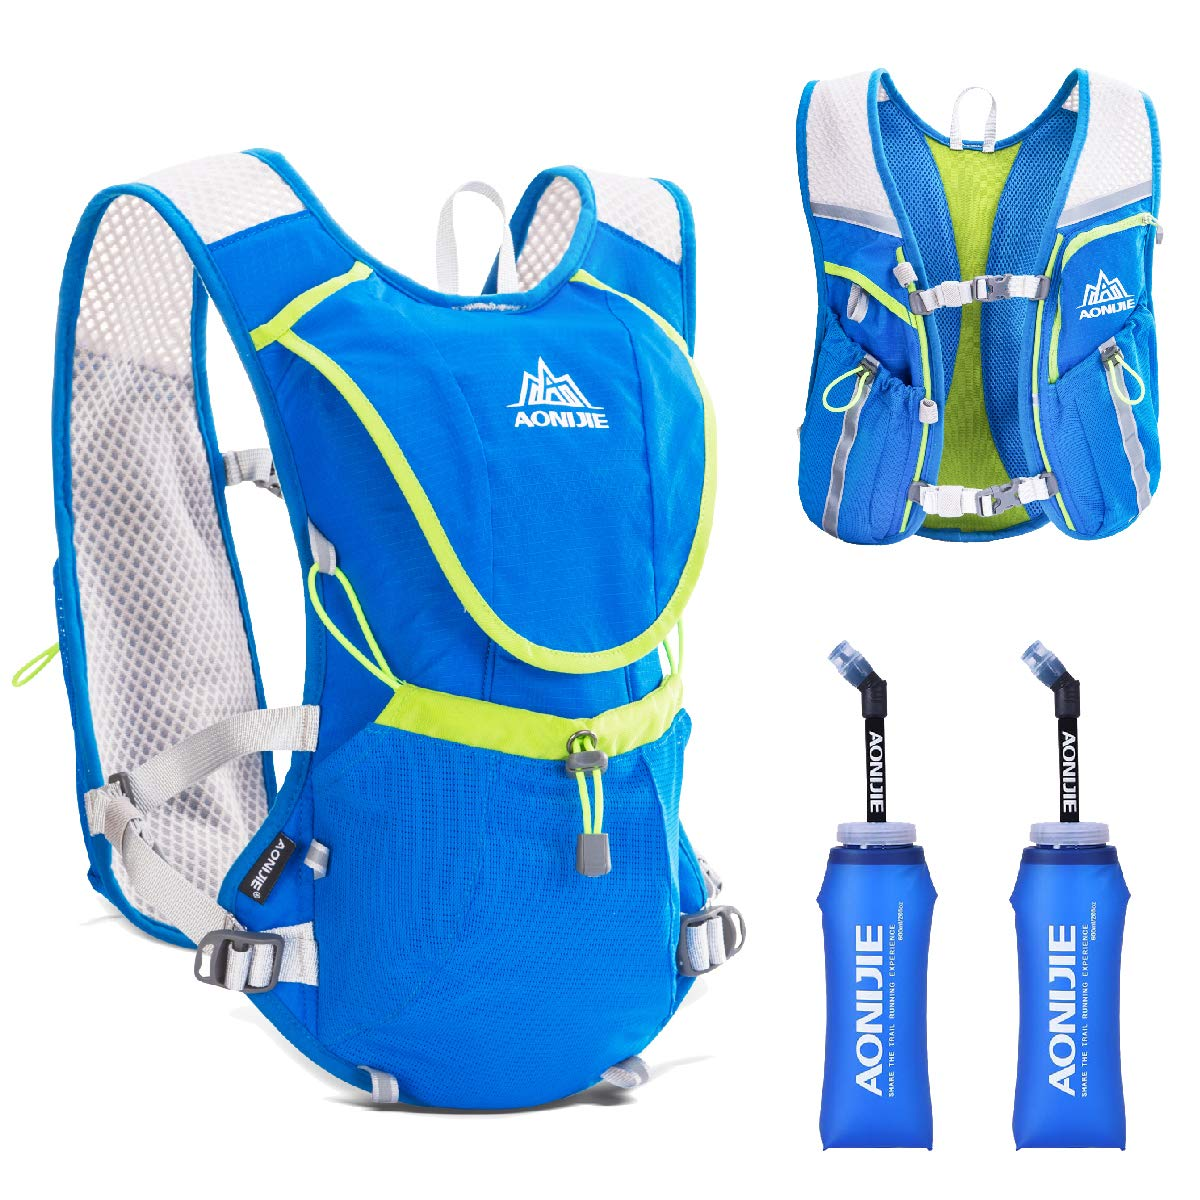 TRIWONDER Hydration Pack Backpack Professional 8L Outdoors Mochilas Trail Marathoner Running Race Cycling Hydration Vest (Blue - with 2 Soft Water Bottles (350ml))